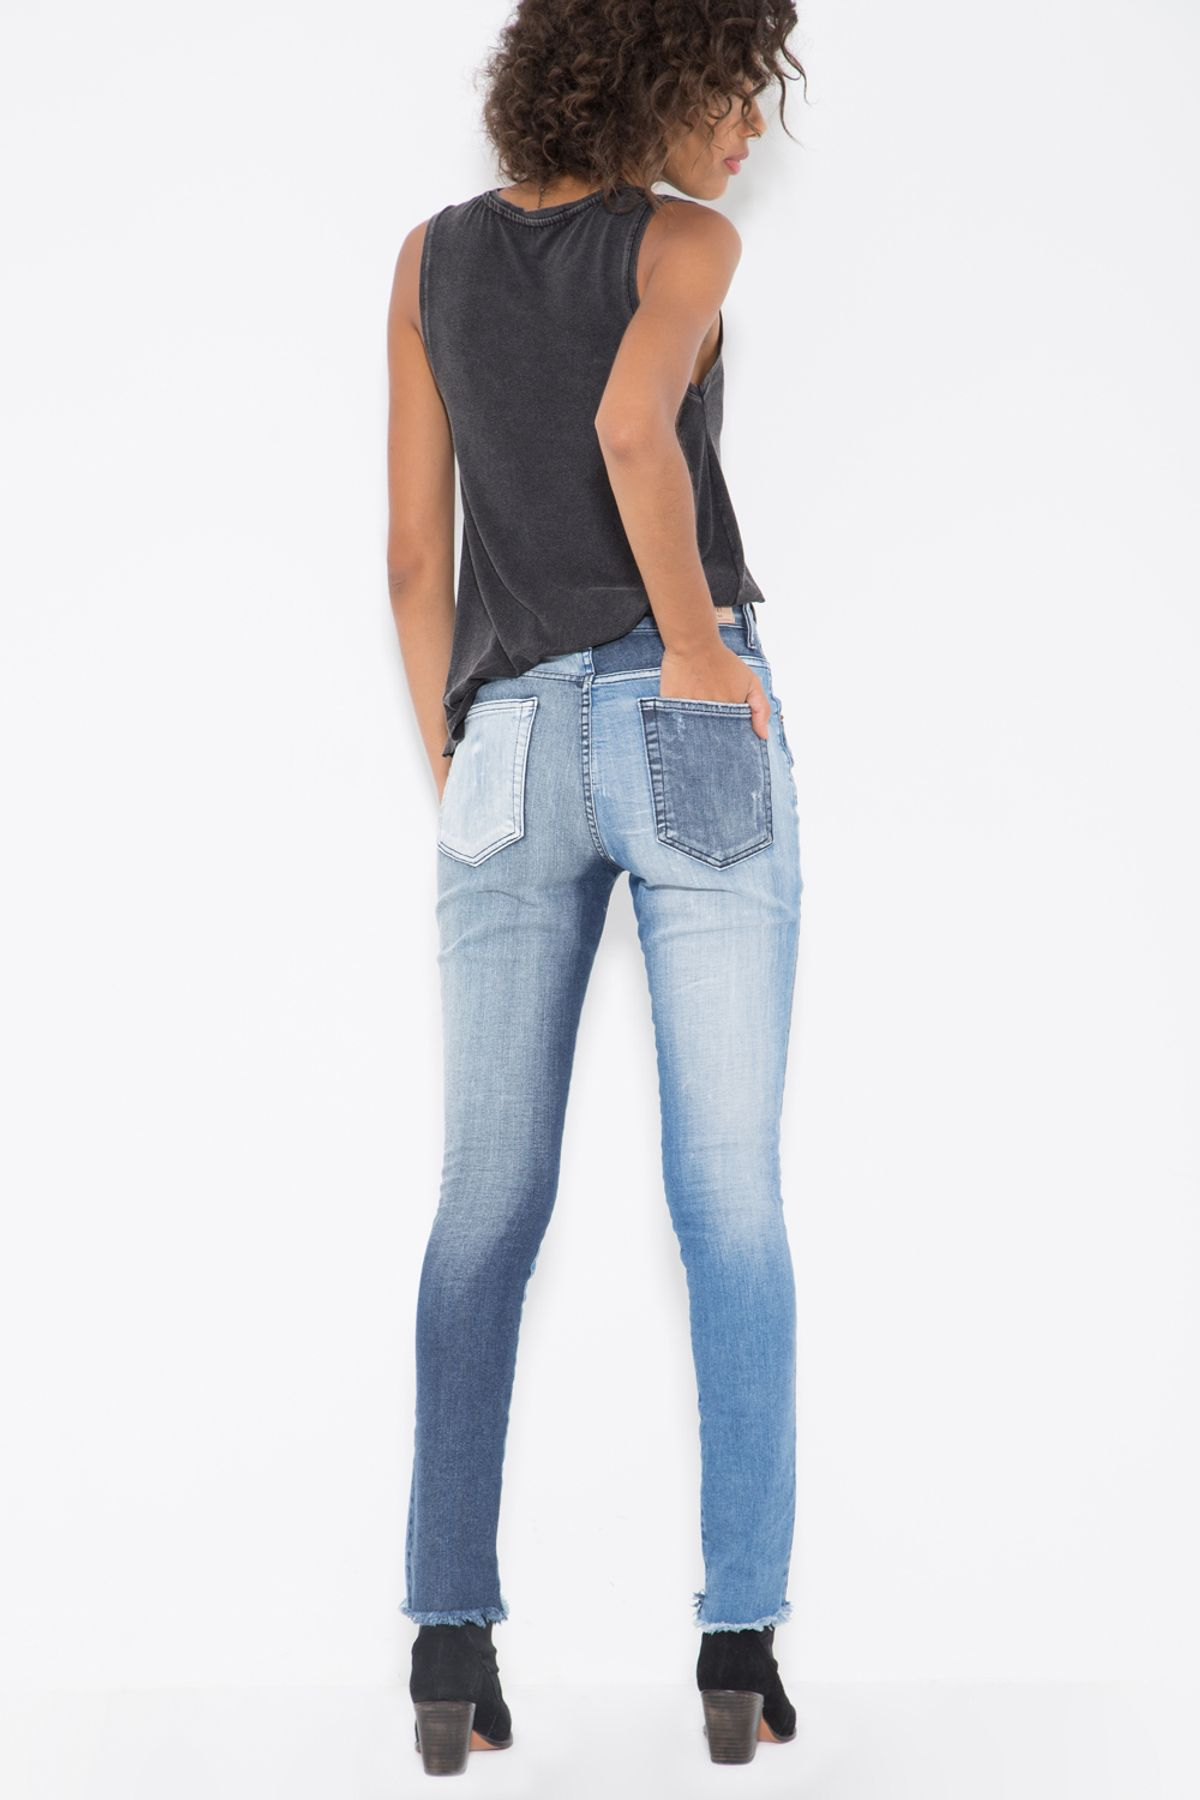 CALCA-JEANS-LAVAGENS-020184460057-OH-BOY